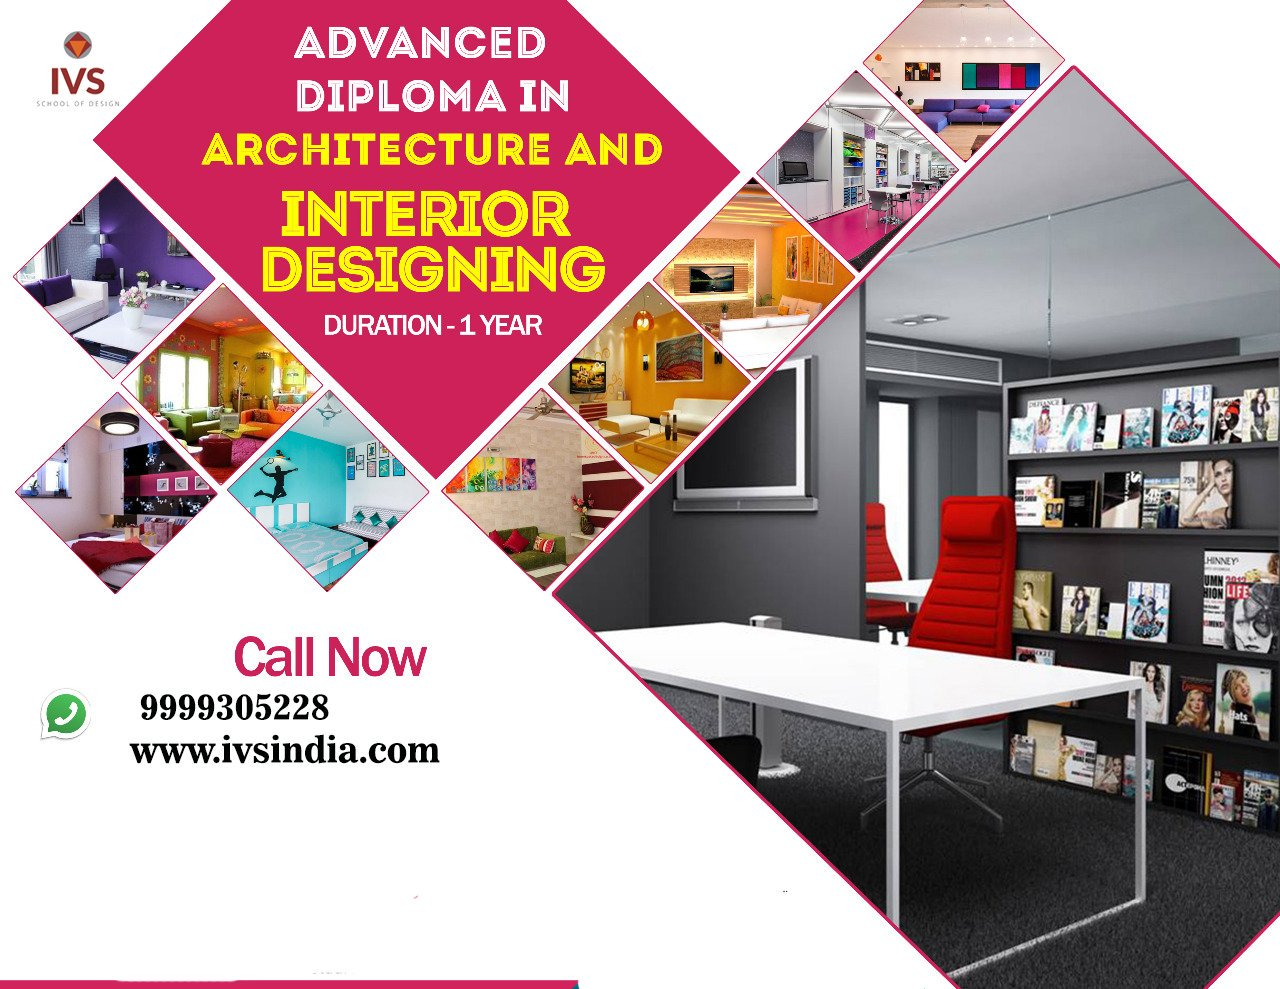 Ivs School Of Design On Twitter Professional Diploma In Interior Architecture Design S Curriculum Is Developed In Collaboration With Professionals In The Interior Design World This Program Provides The Basic Foundational Knowledge